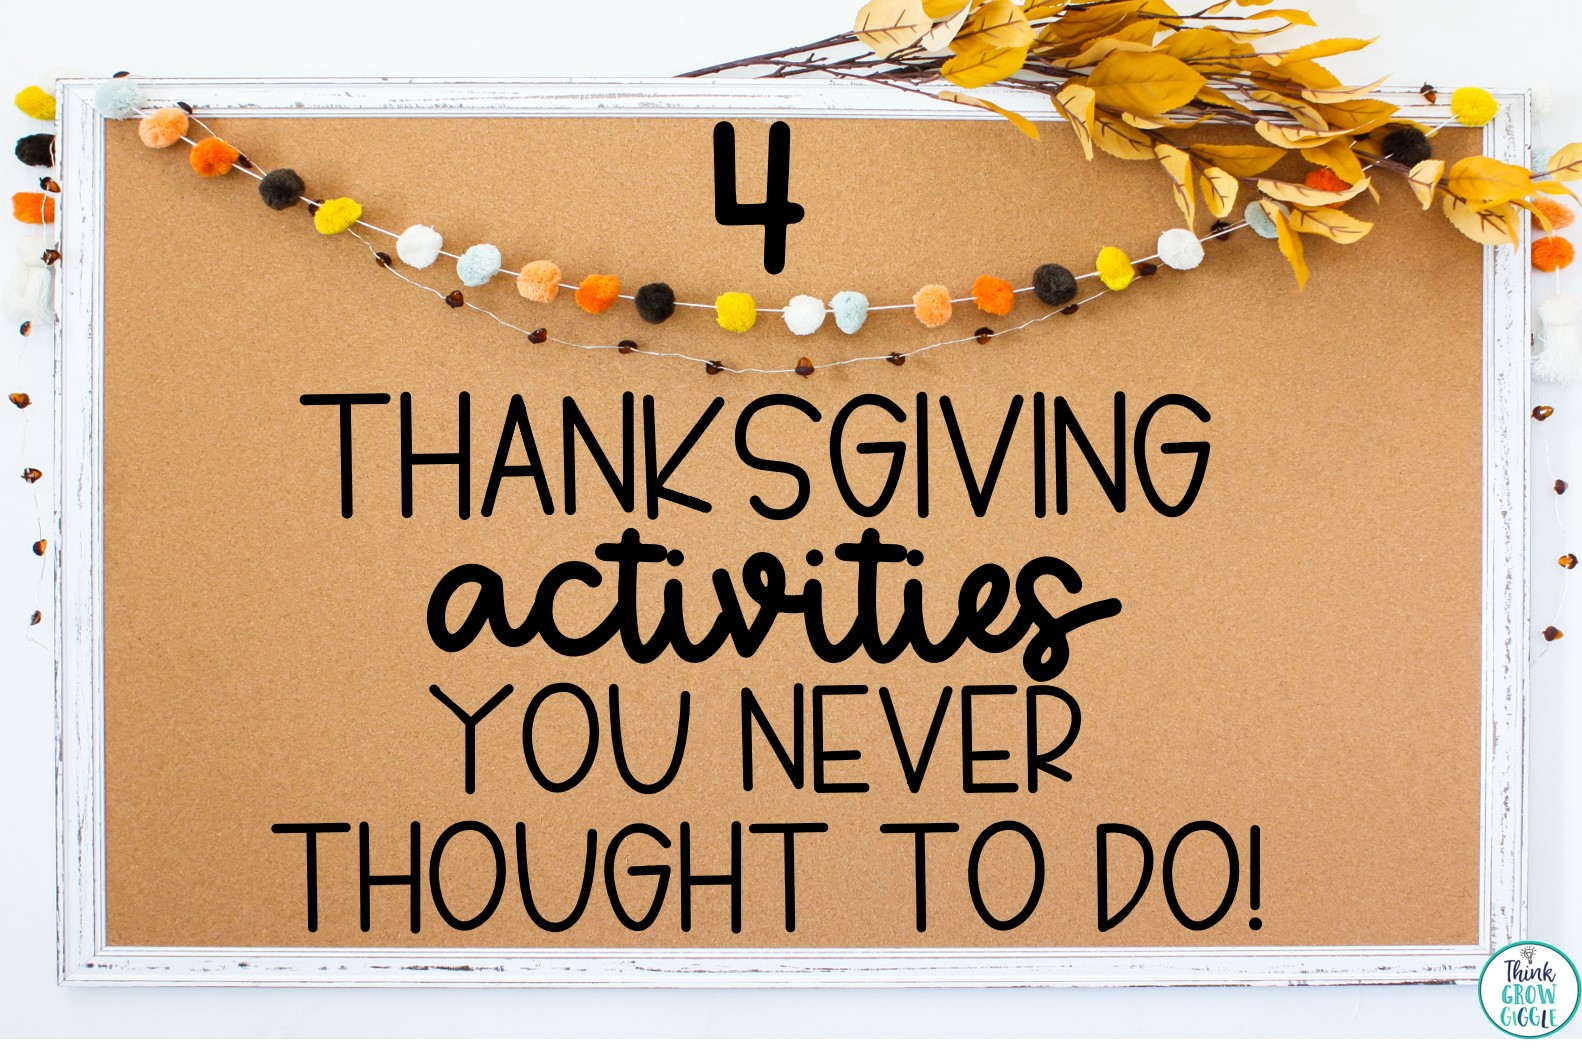 4 Thanksgiving Activities You Never Thought To Do